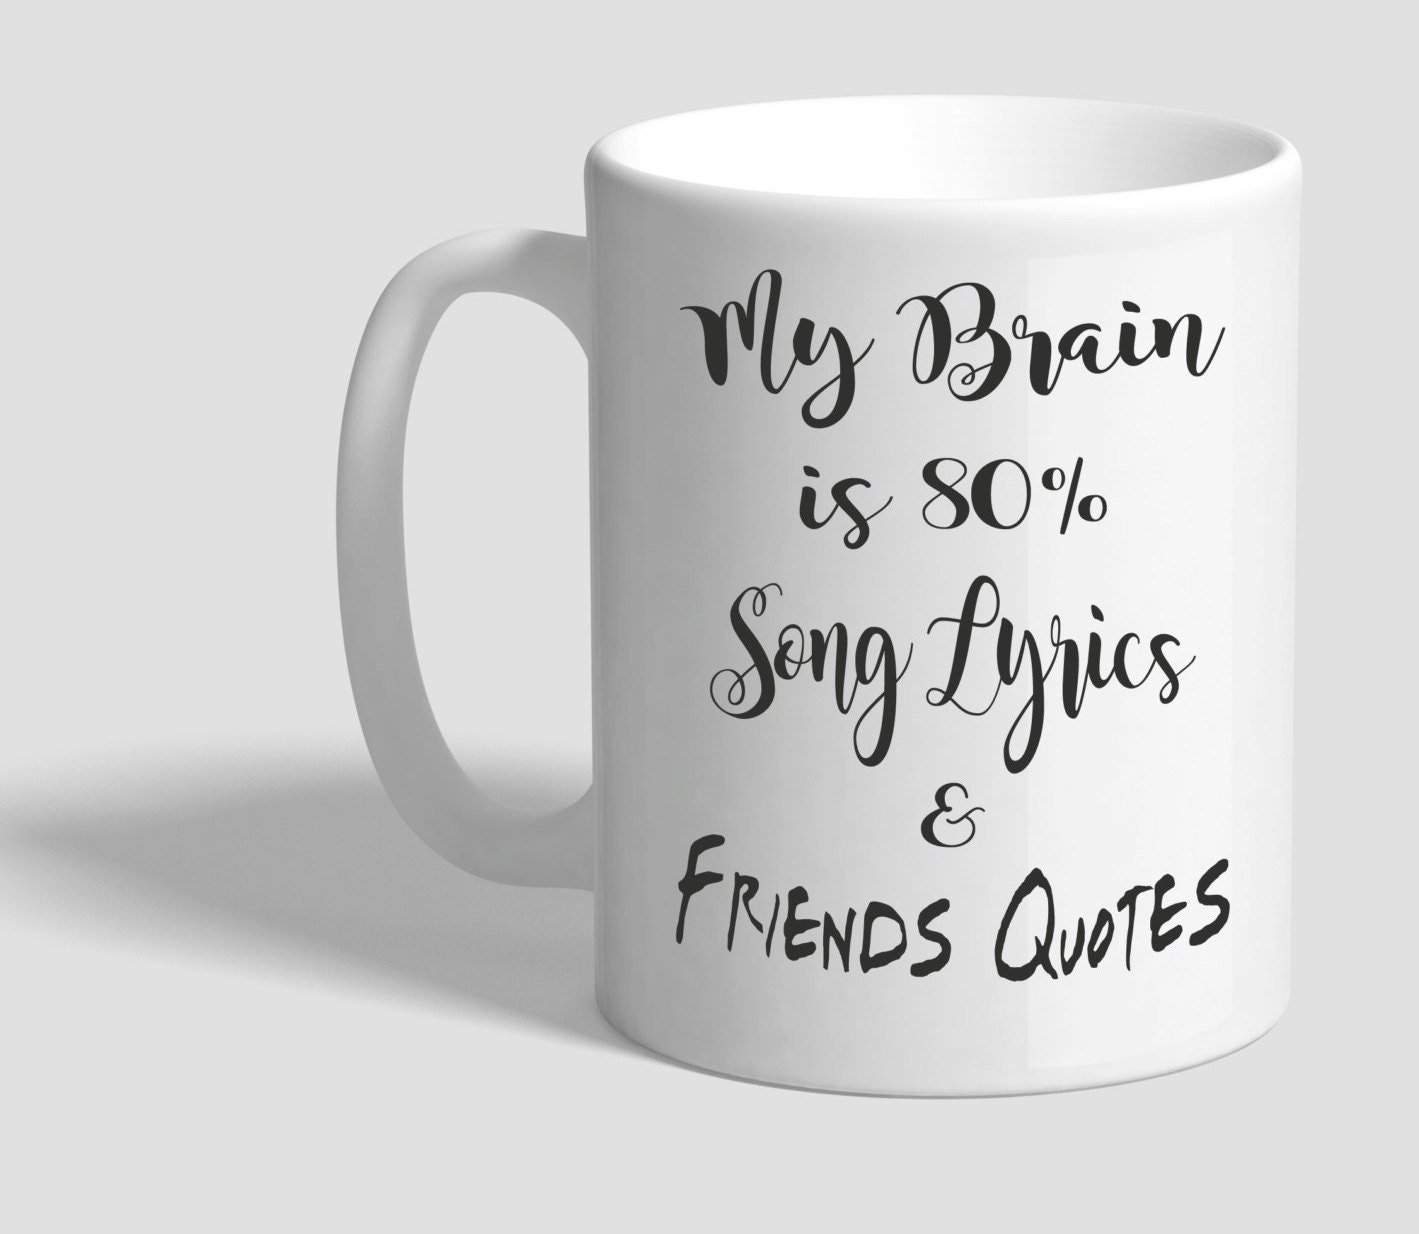 Quotes About Coffee And Friendship My Brain Coffee Mug 11 Ozsong Lyrics And Friends Quotes